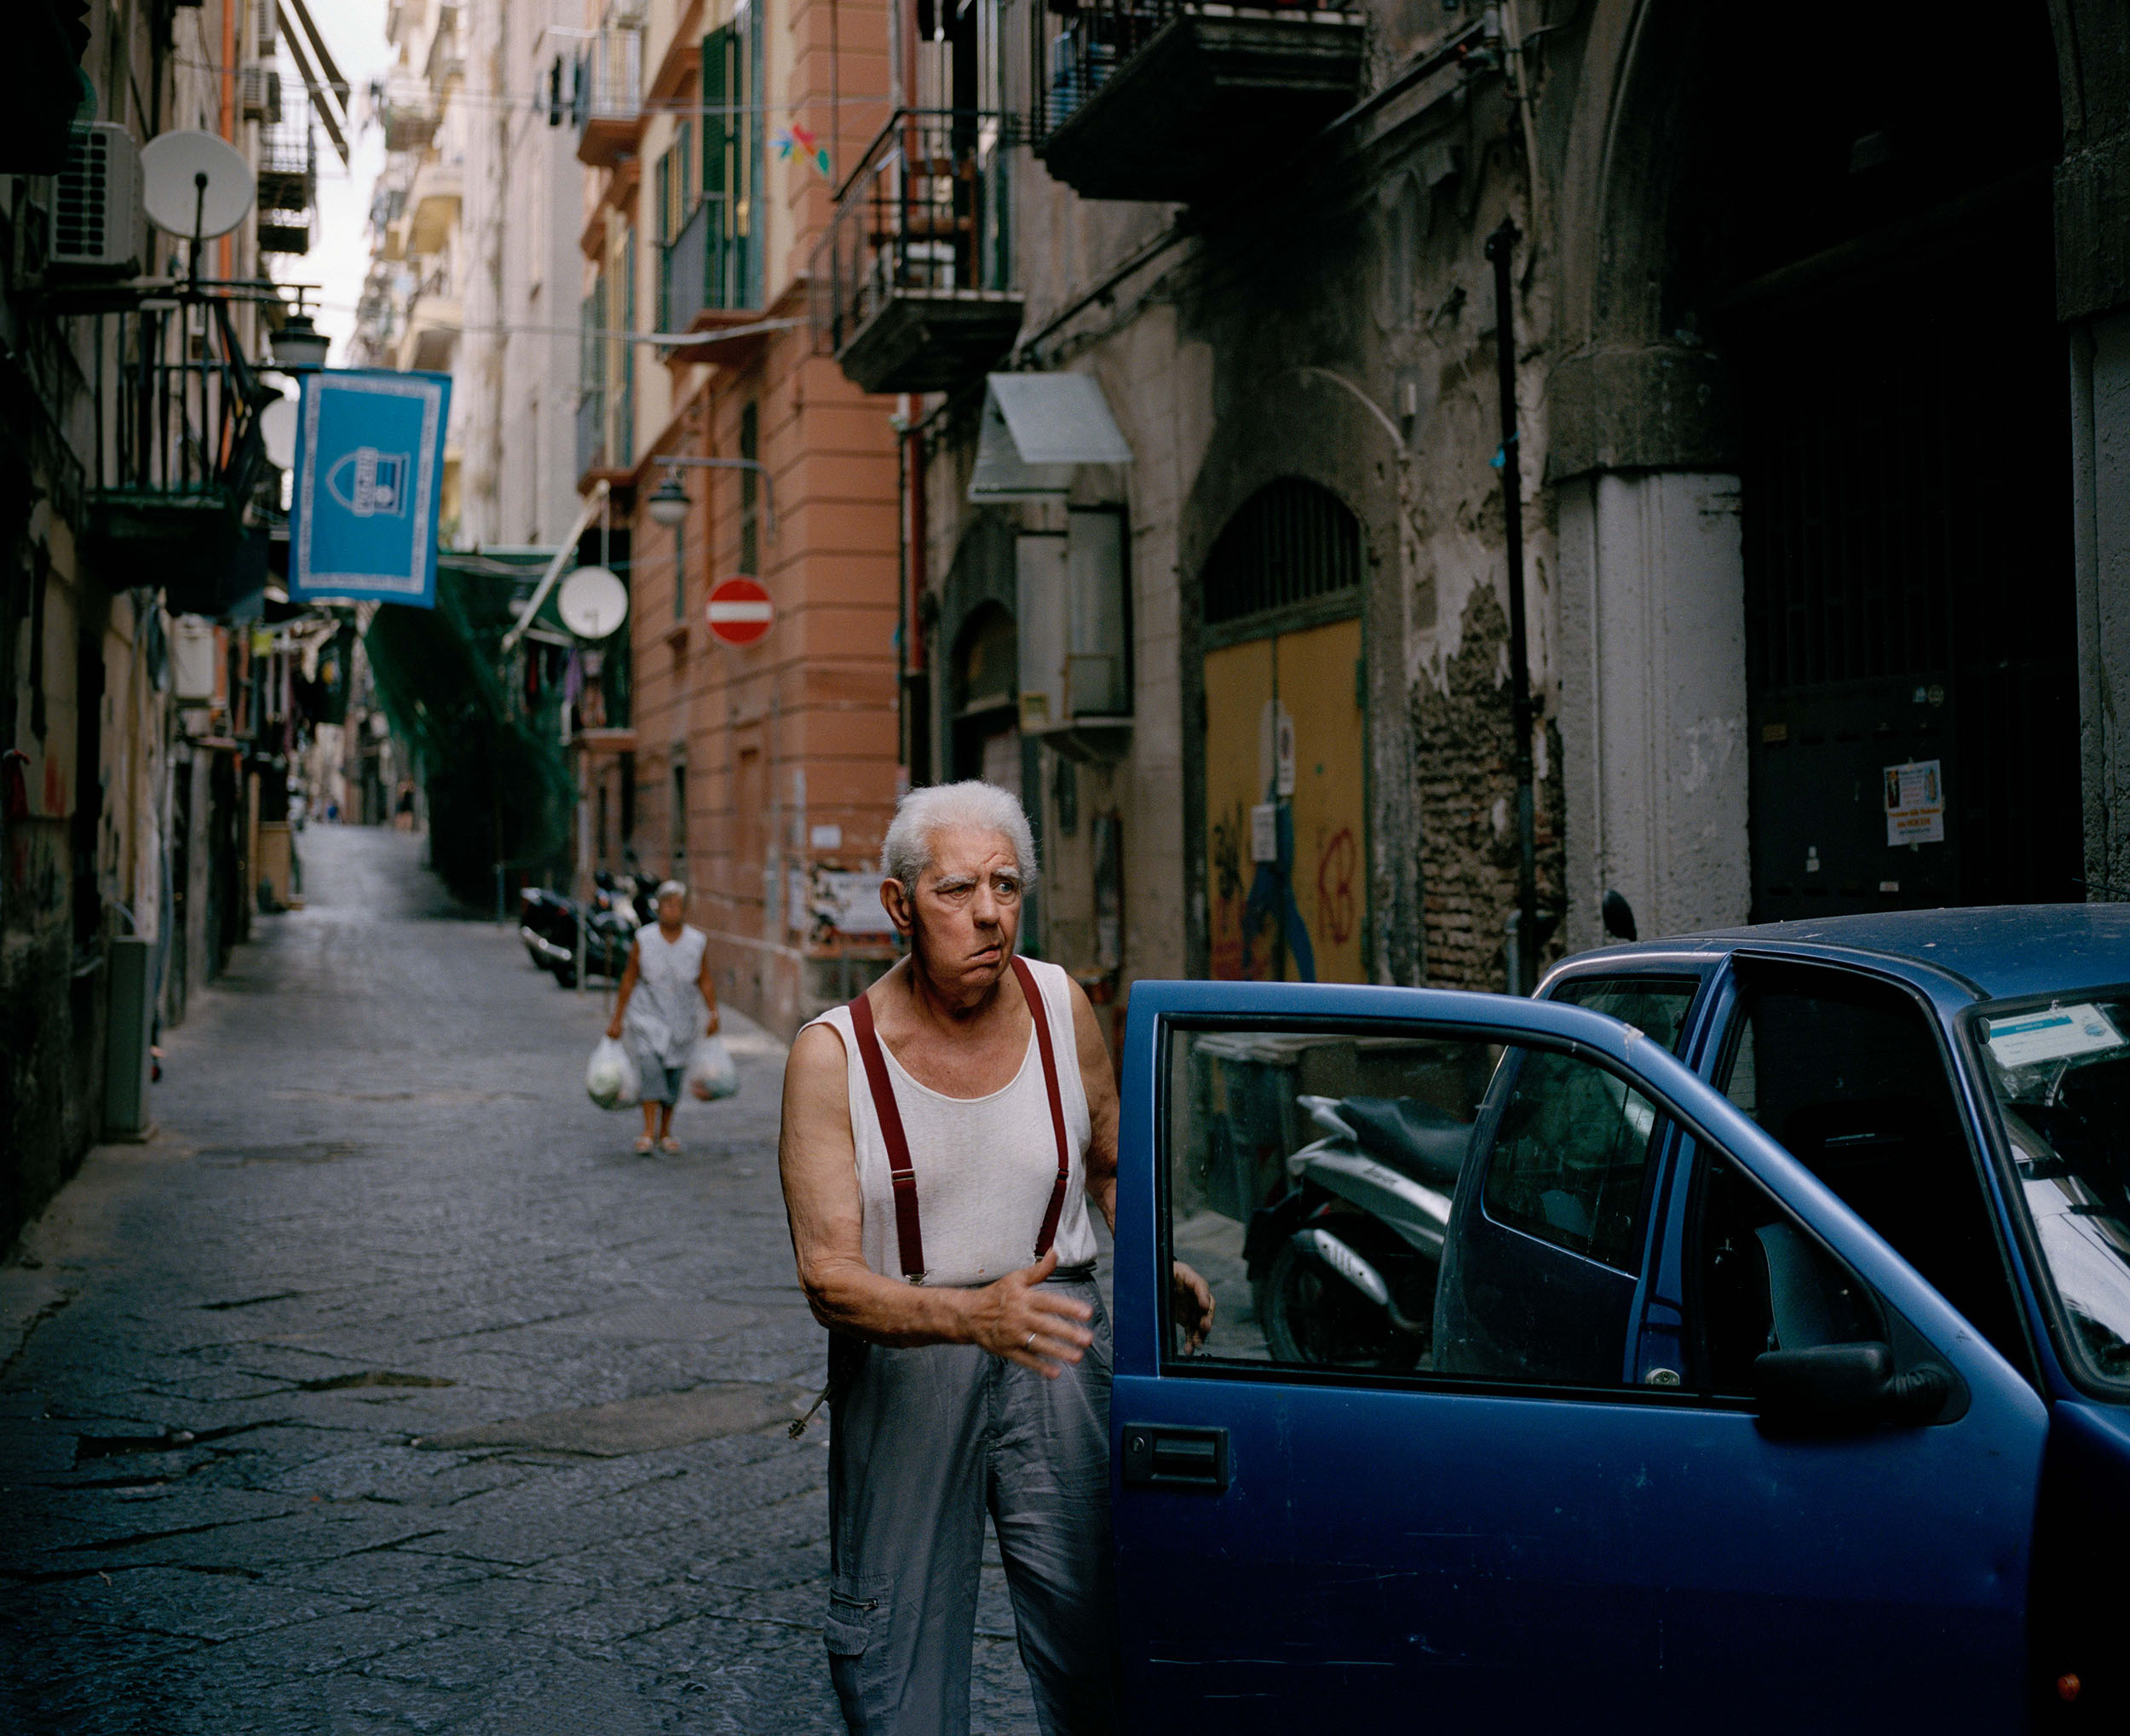 20-see-naples-and-die-sam-gregg-napoli-photography-photographer.jpg